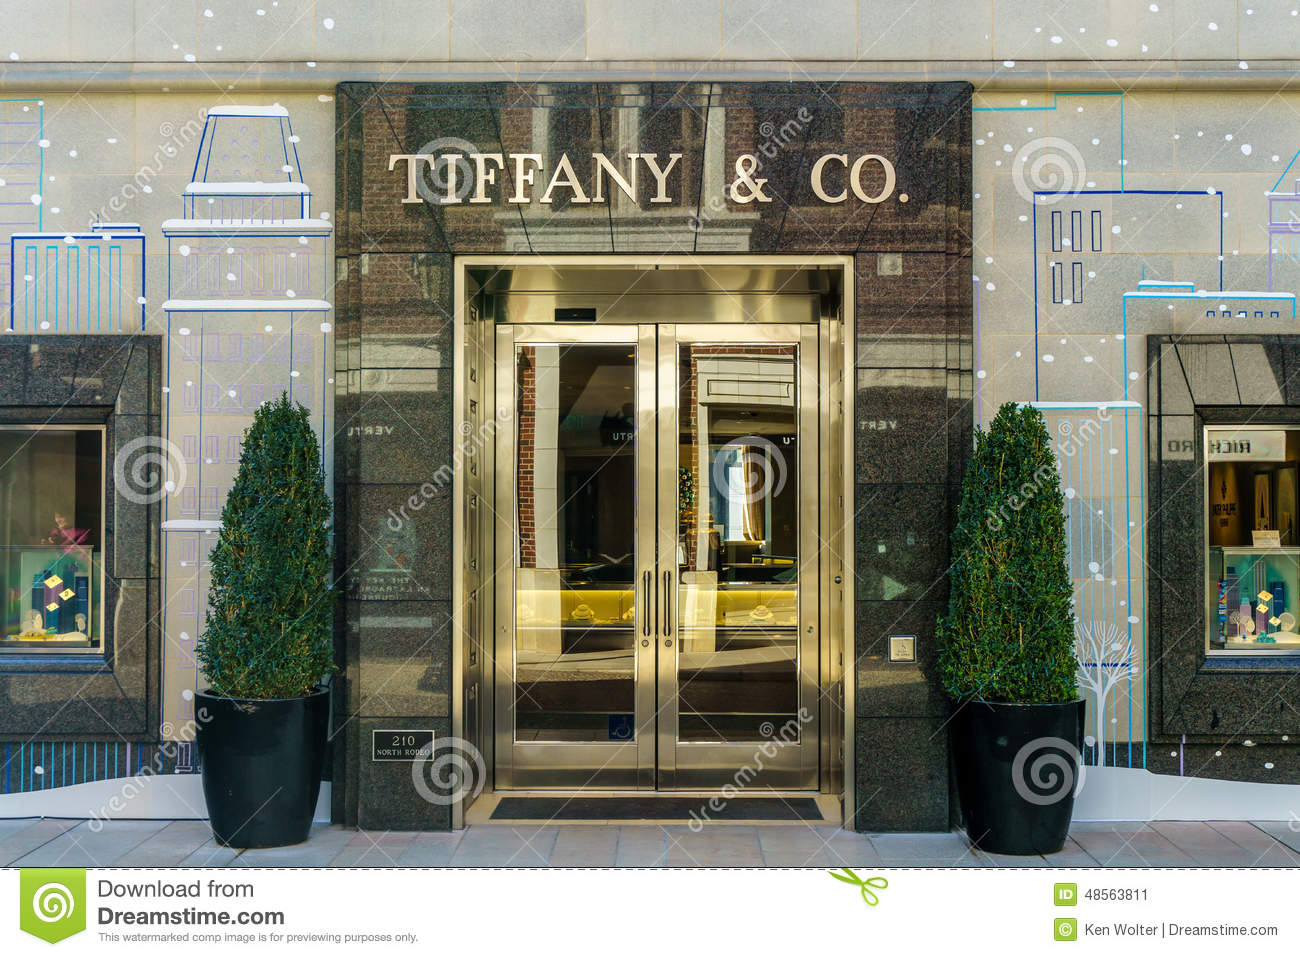 Tiffany company retail store exterior editorial photo for Exterior design company